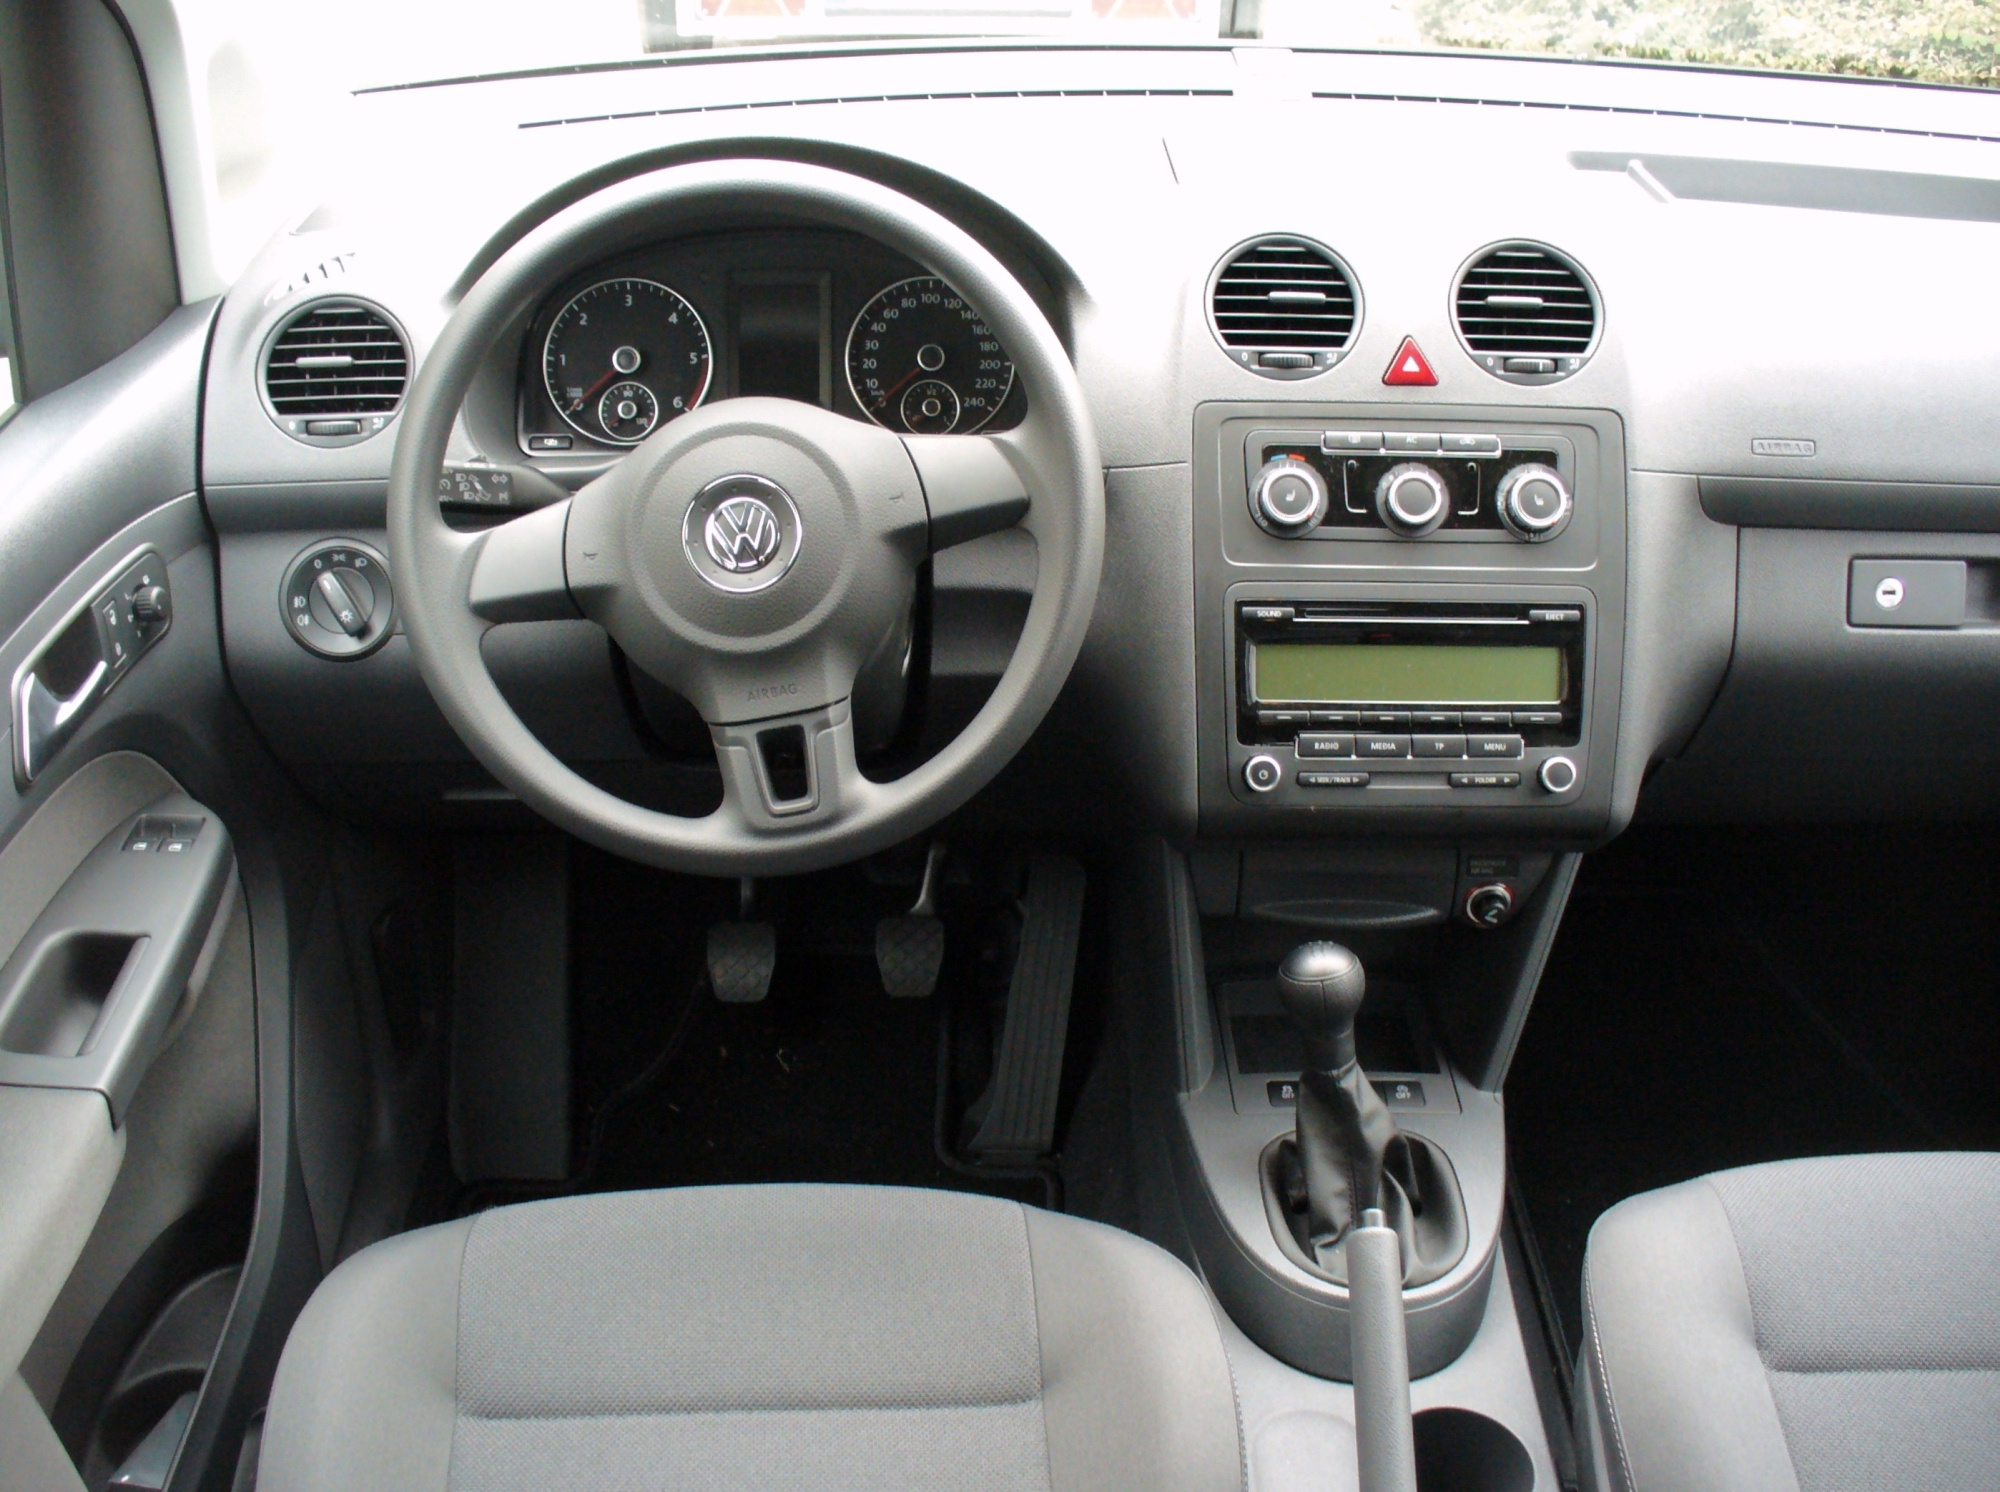 File:VW Caddy Facelift 1.6 TDI BlueMotion Interieur.JPG - Wikimedia ...